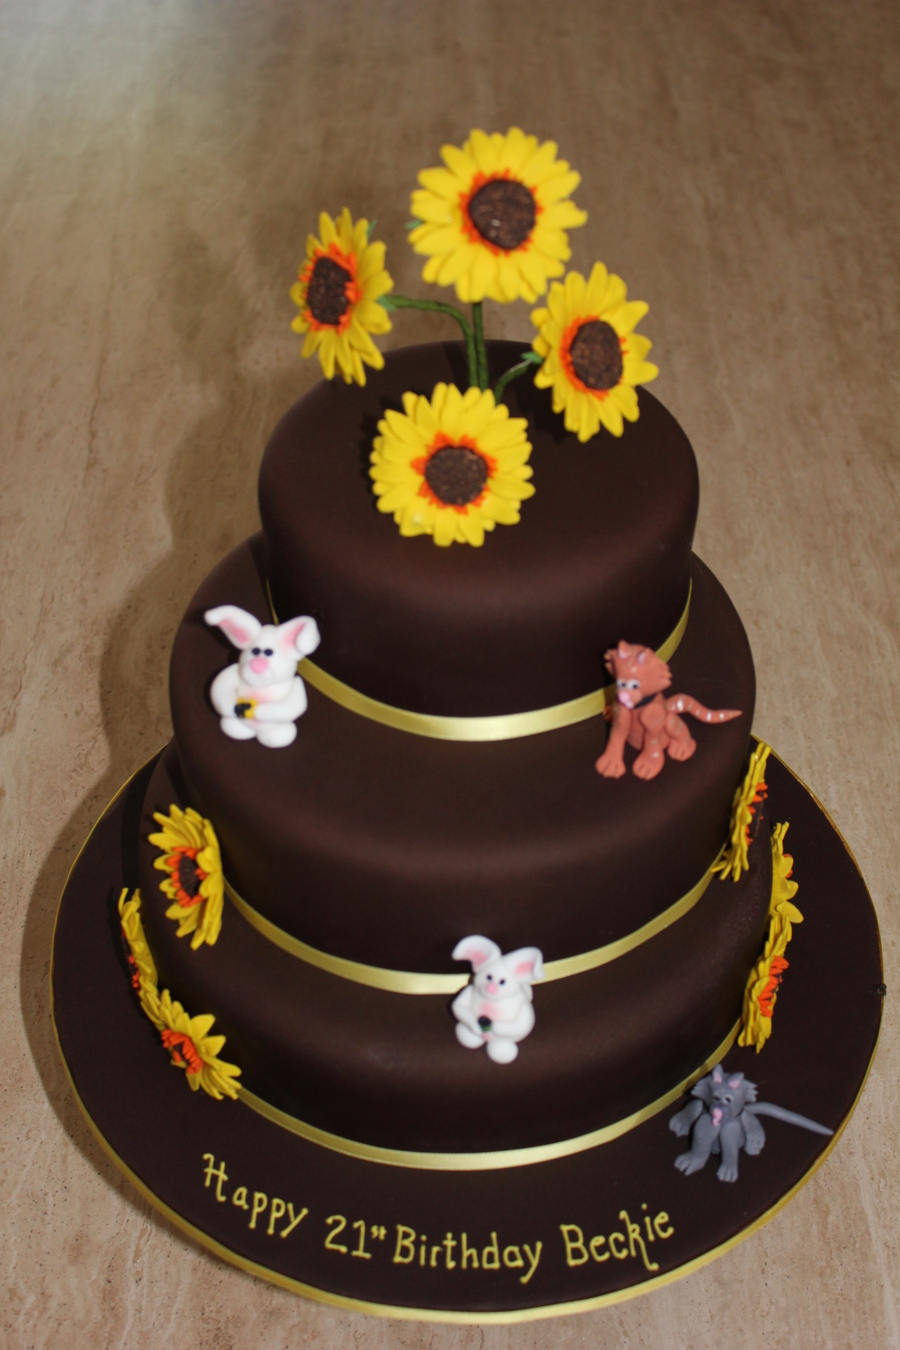 Pleasing Sunflowers Cats And Rabbits 3 Tier Chocolate Cake Cakecentral Com Personalised Birthday Cards Arneslily Jamesorg